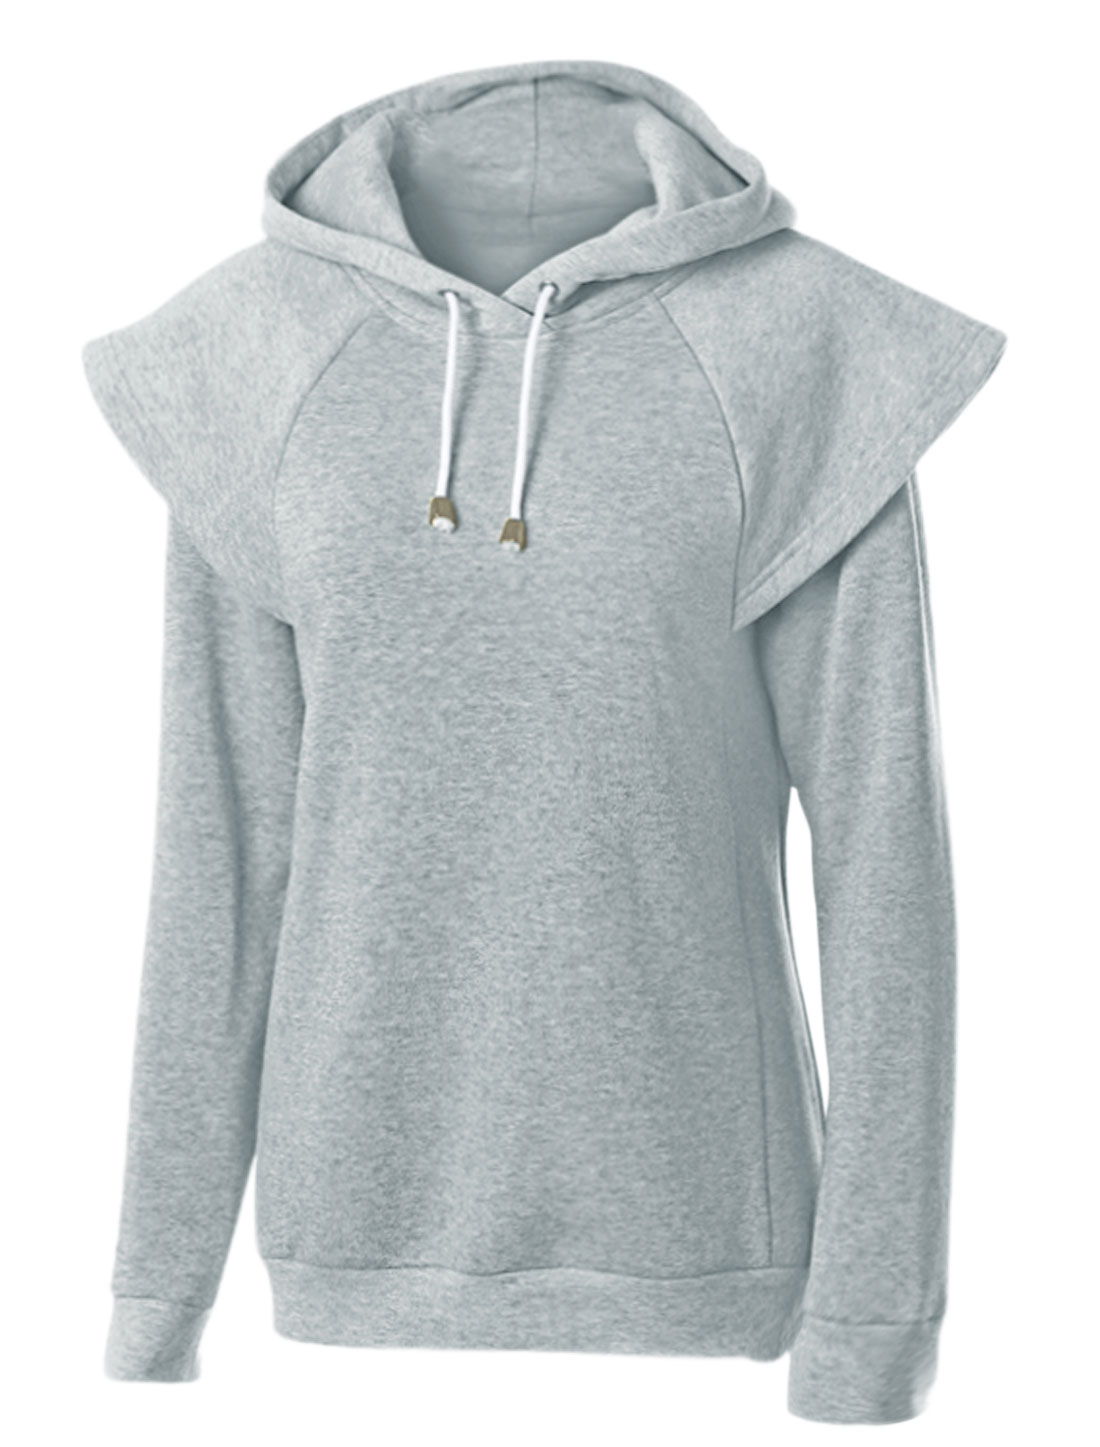 Women Overlay Shoulder Long Sleeves Drawstring Hooded Tunic Sweatshirt Gray M